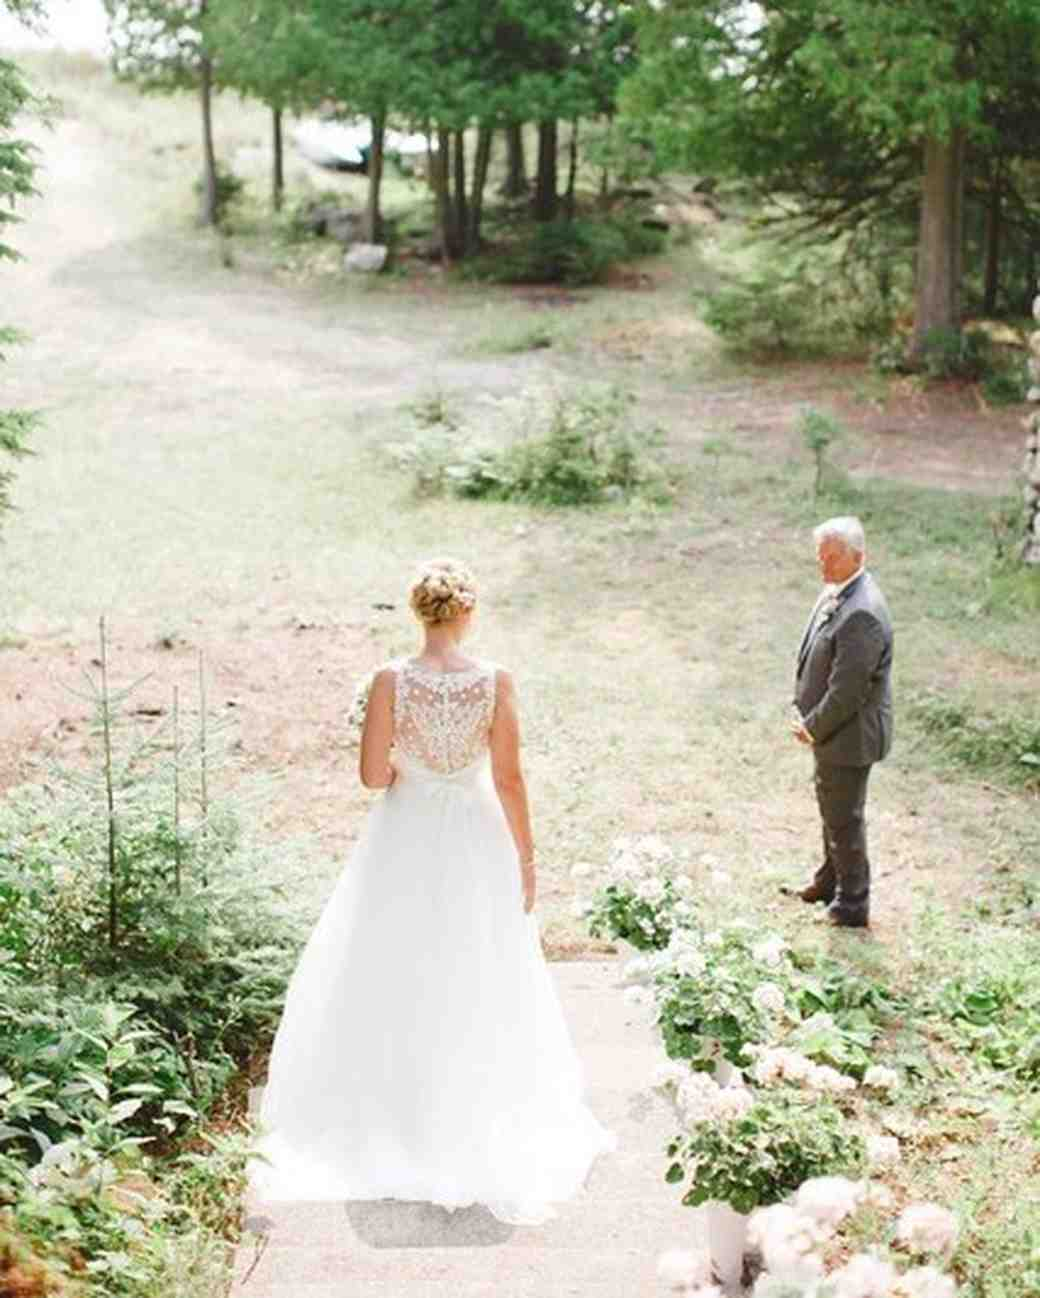 Father-Daughter Wedding Photos, Daughter Walking Towards Dad Outside